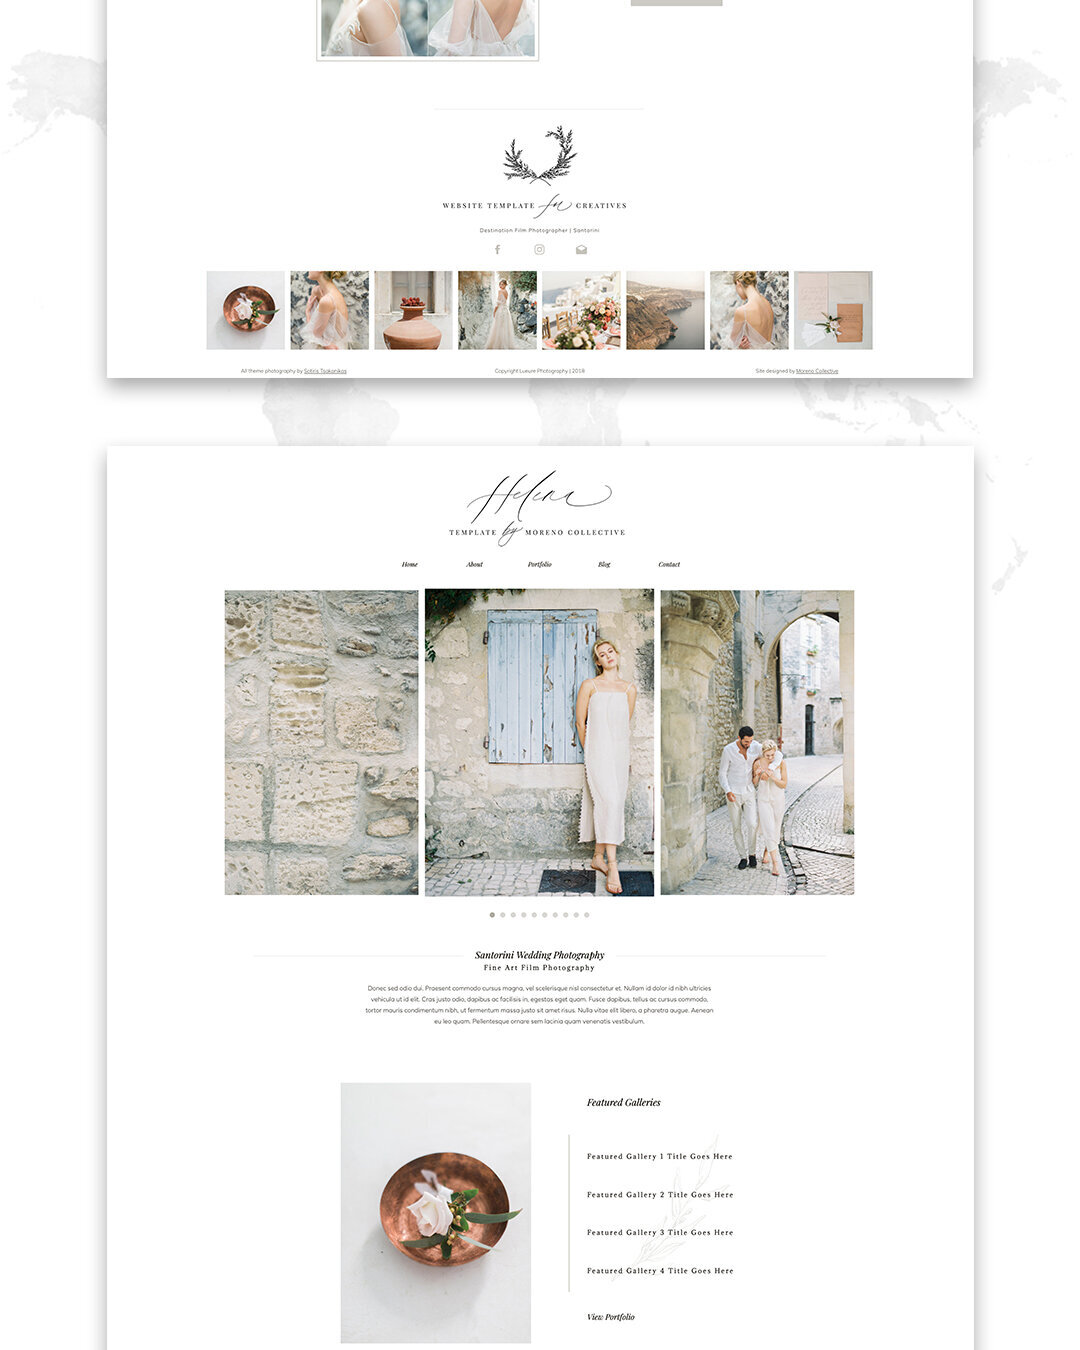 Showit-template-help-moreno-collective-helena